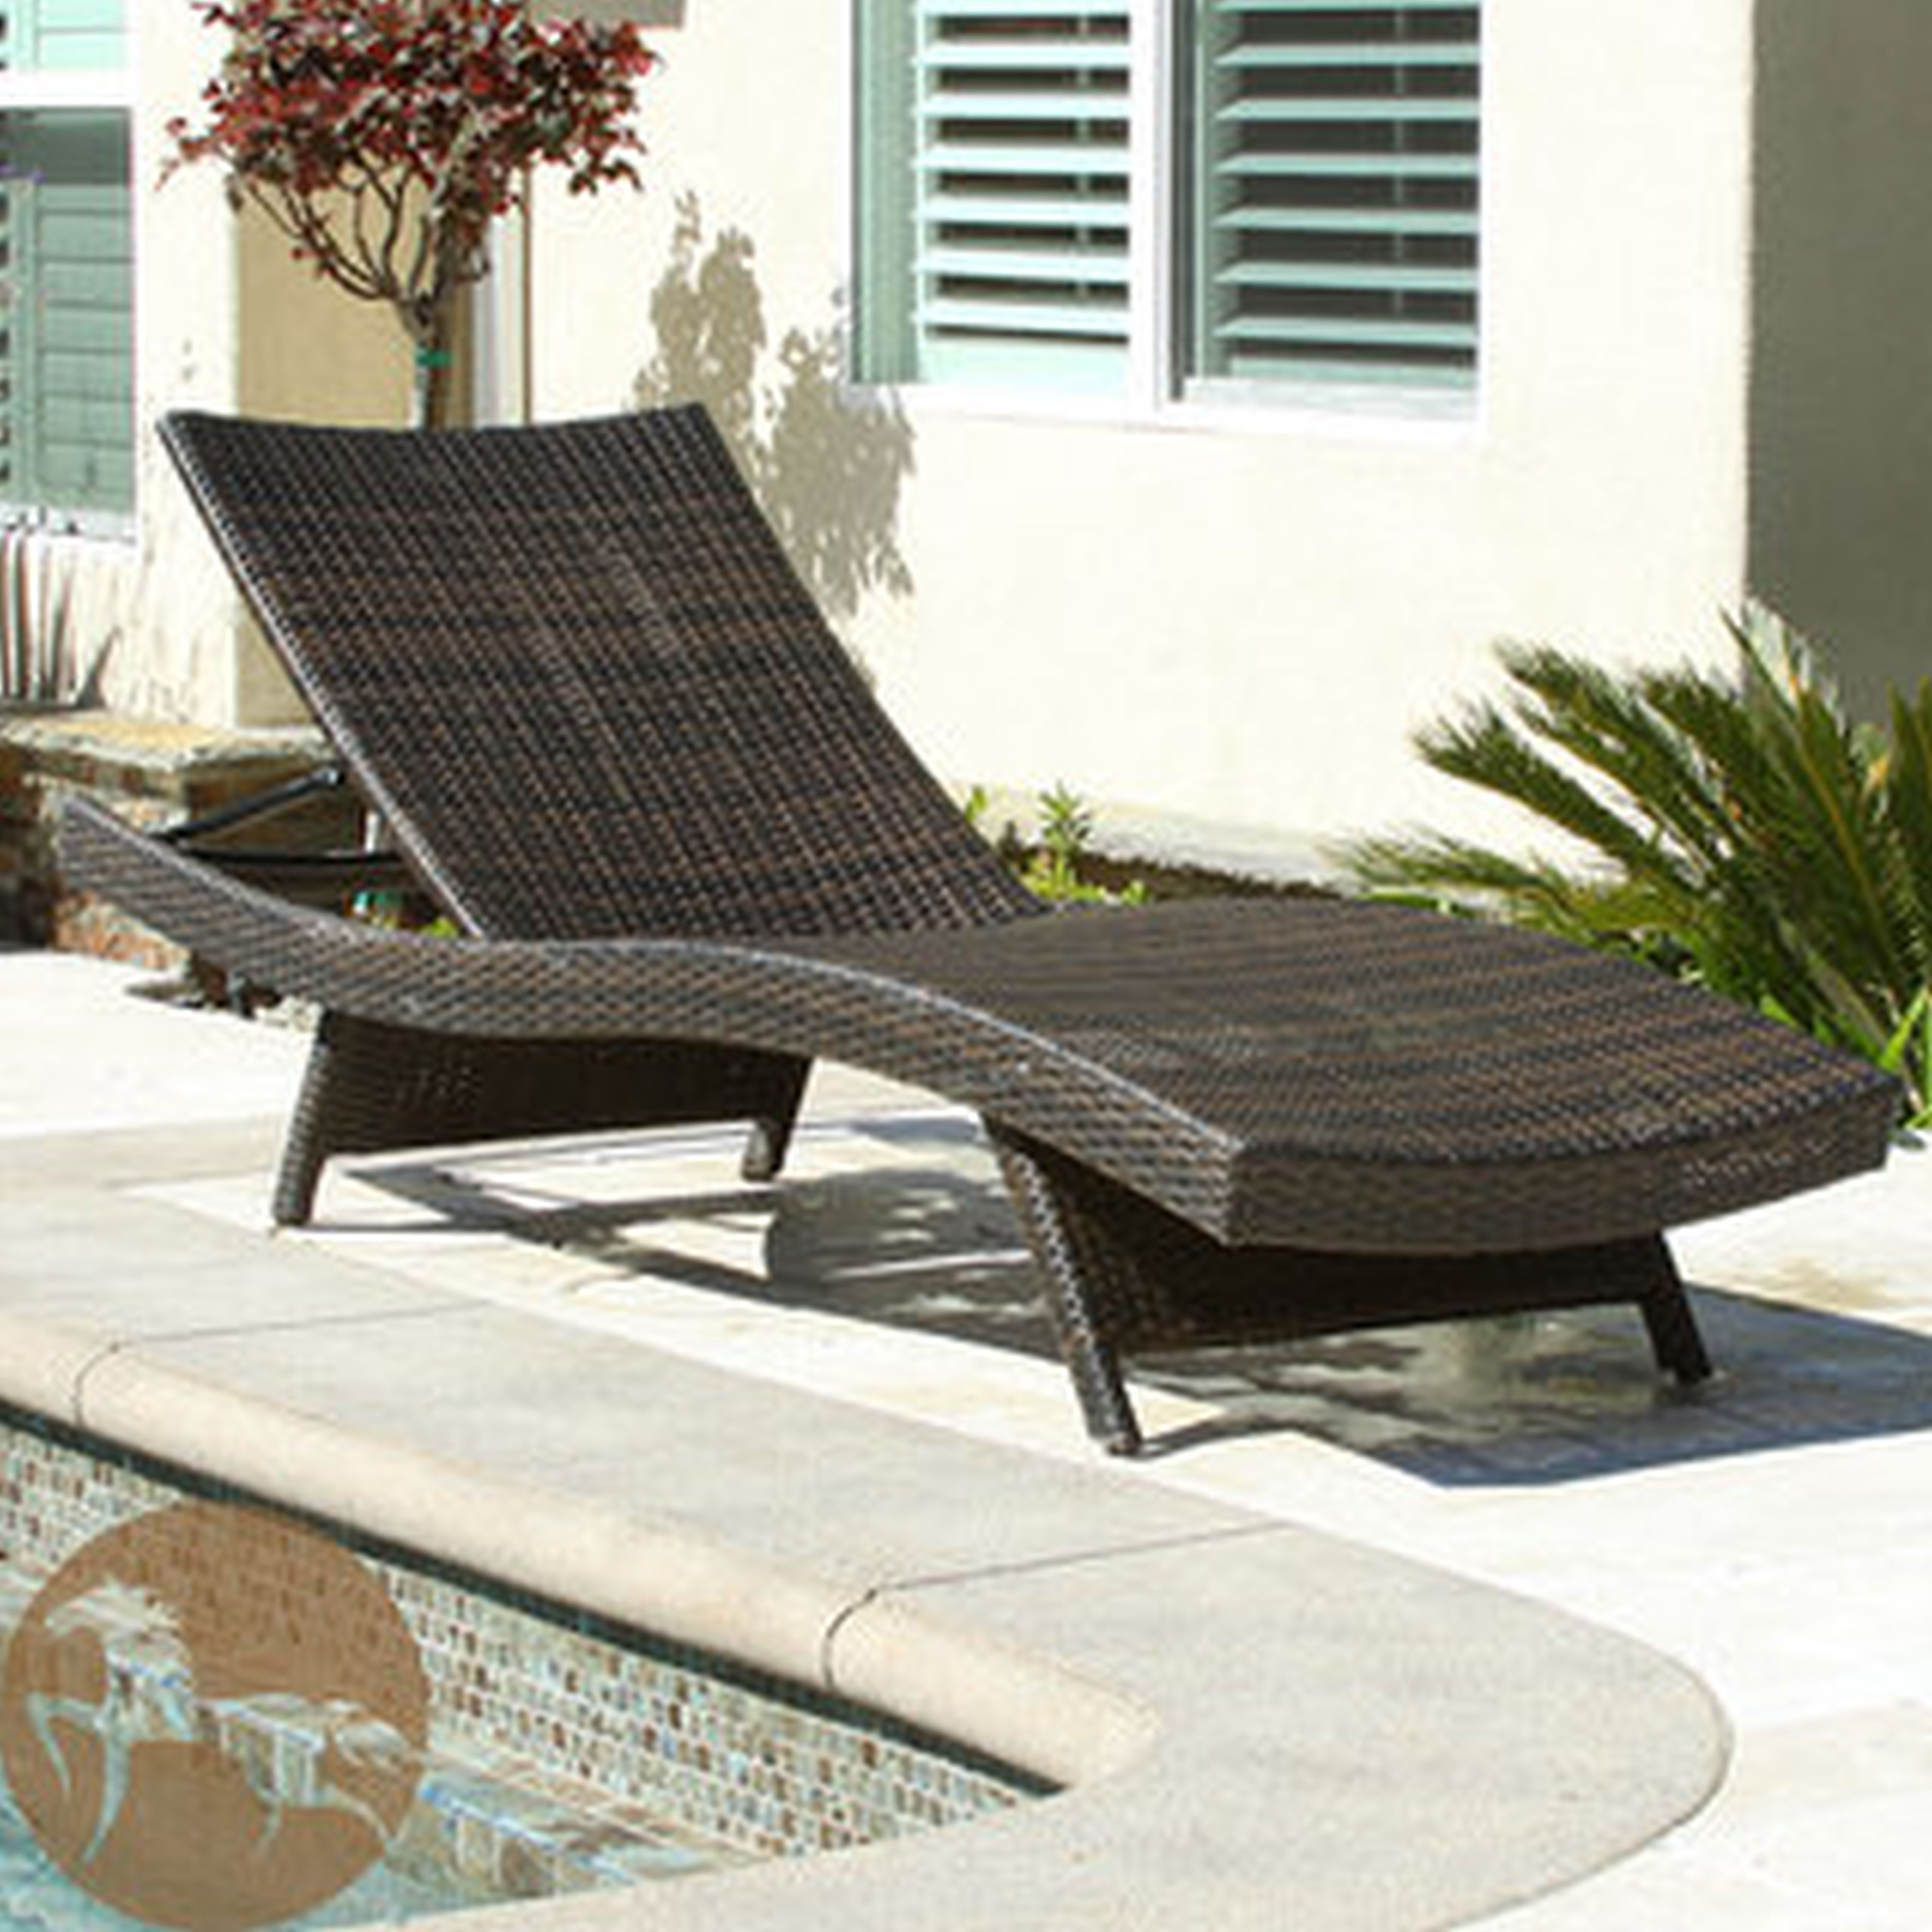 Patio Chaise Lounge As The Must Have Furniture In Your Pool Deck Pertaining To Newest Black Outdoor Chaise Lounge Chairs (View 12 of 15)